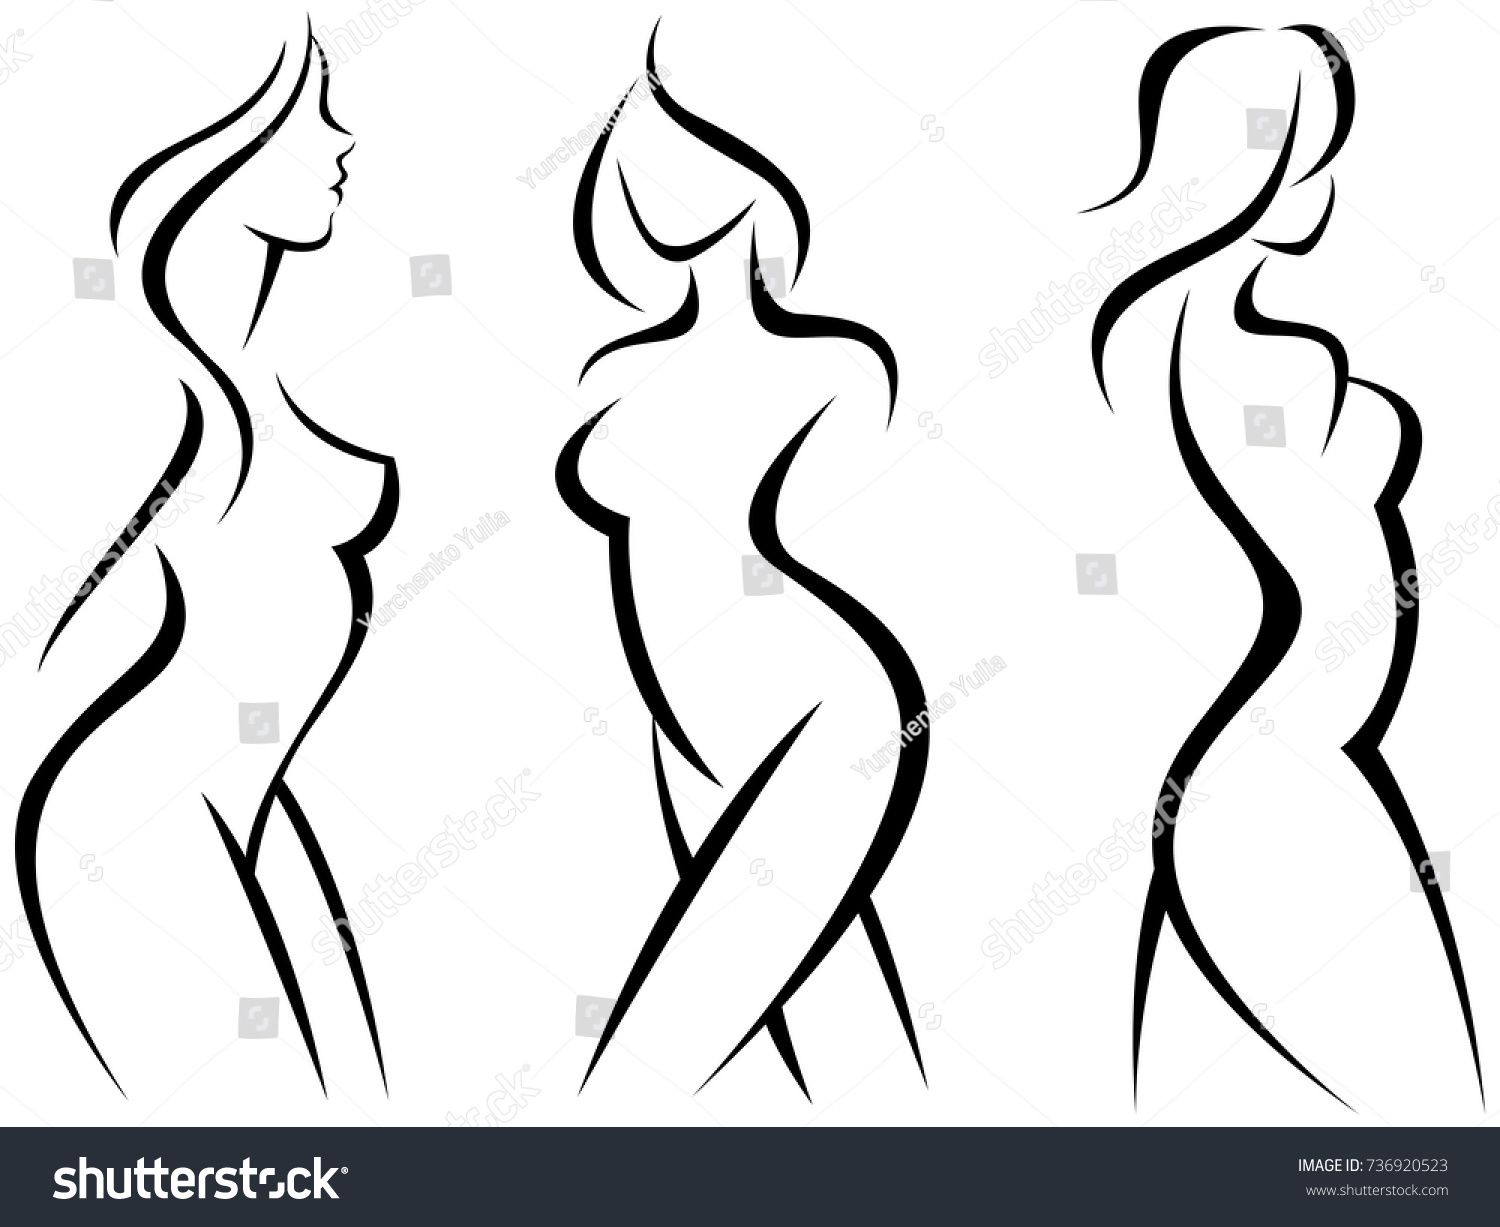 1500x1227 Set Of Stylized Silhouettes Woman Bodystock Vector Illustration